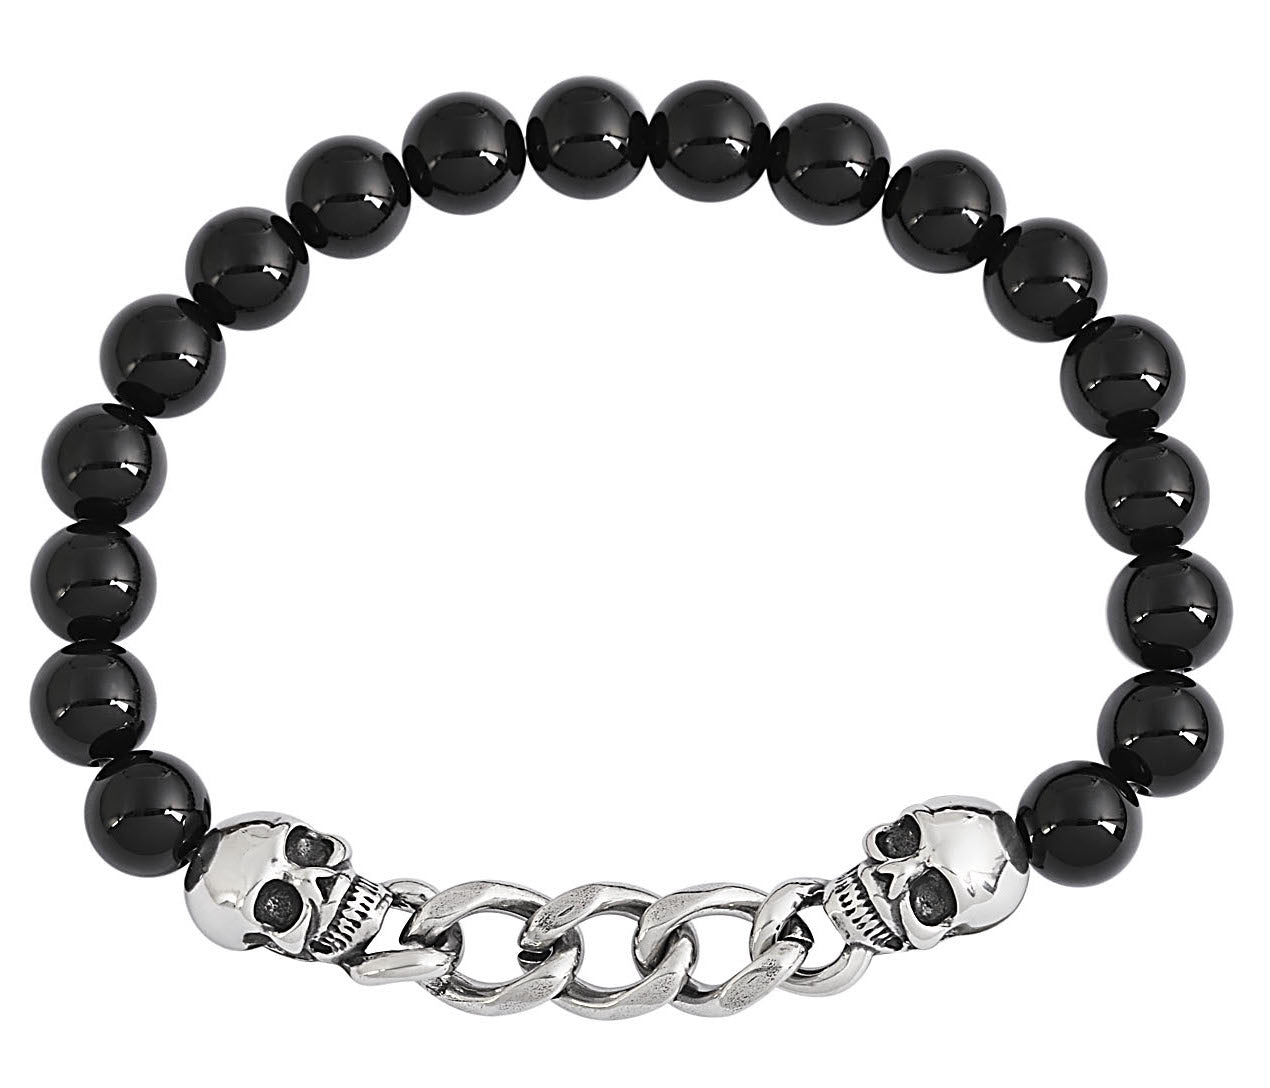 Black Natural Stone Skull Chain Link Bracelet